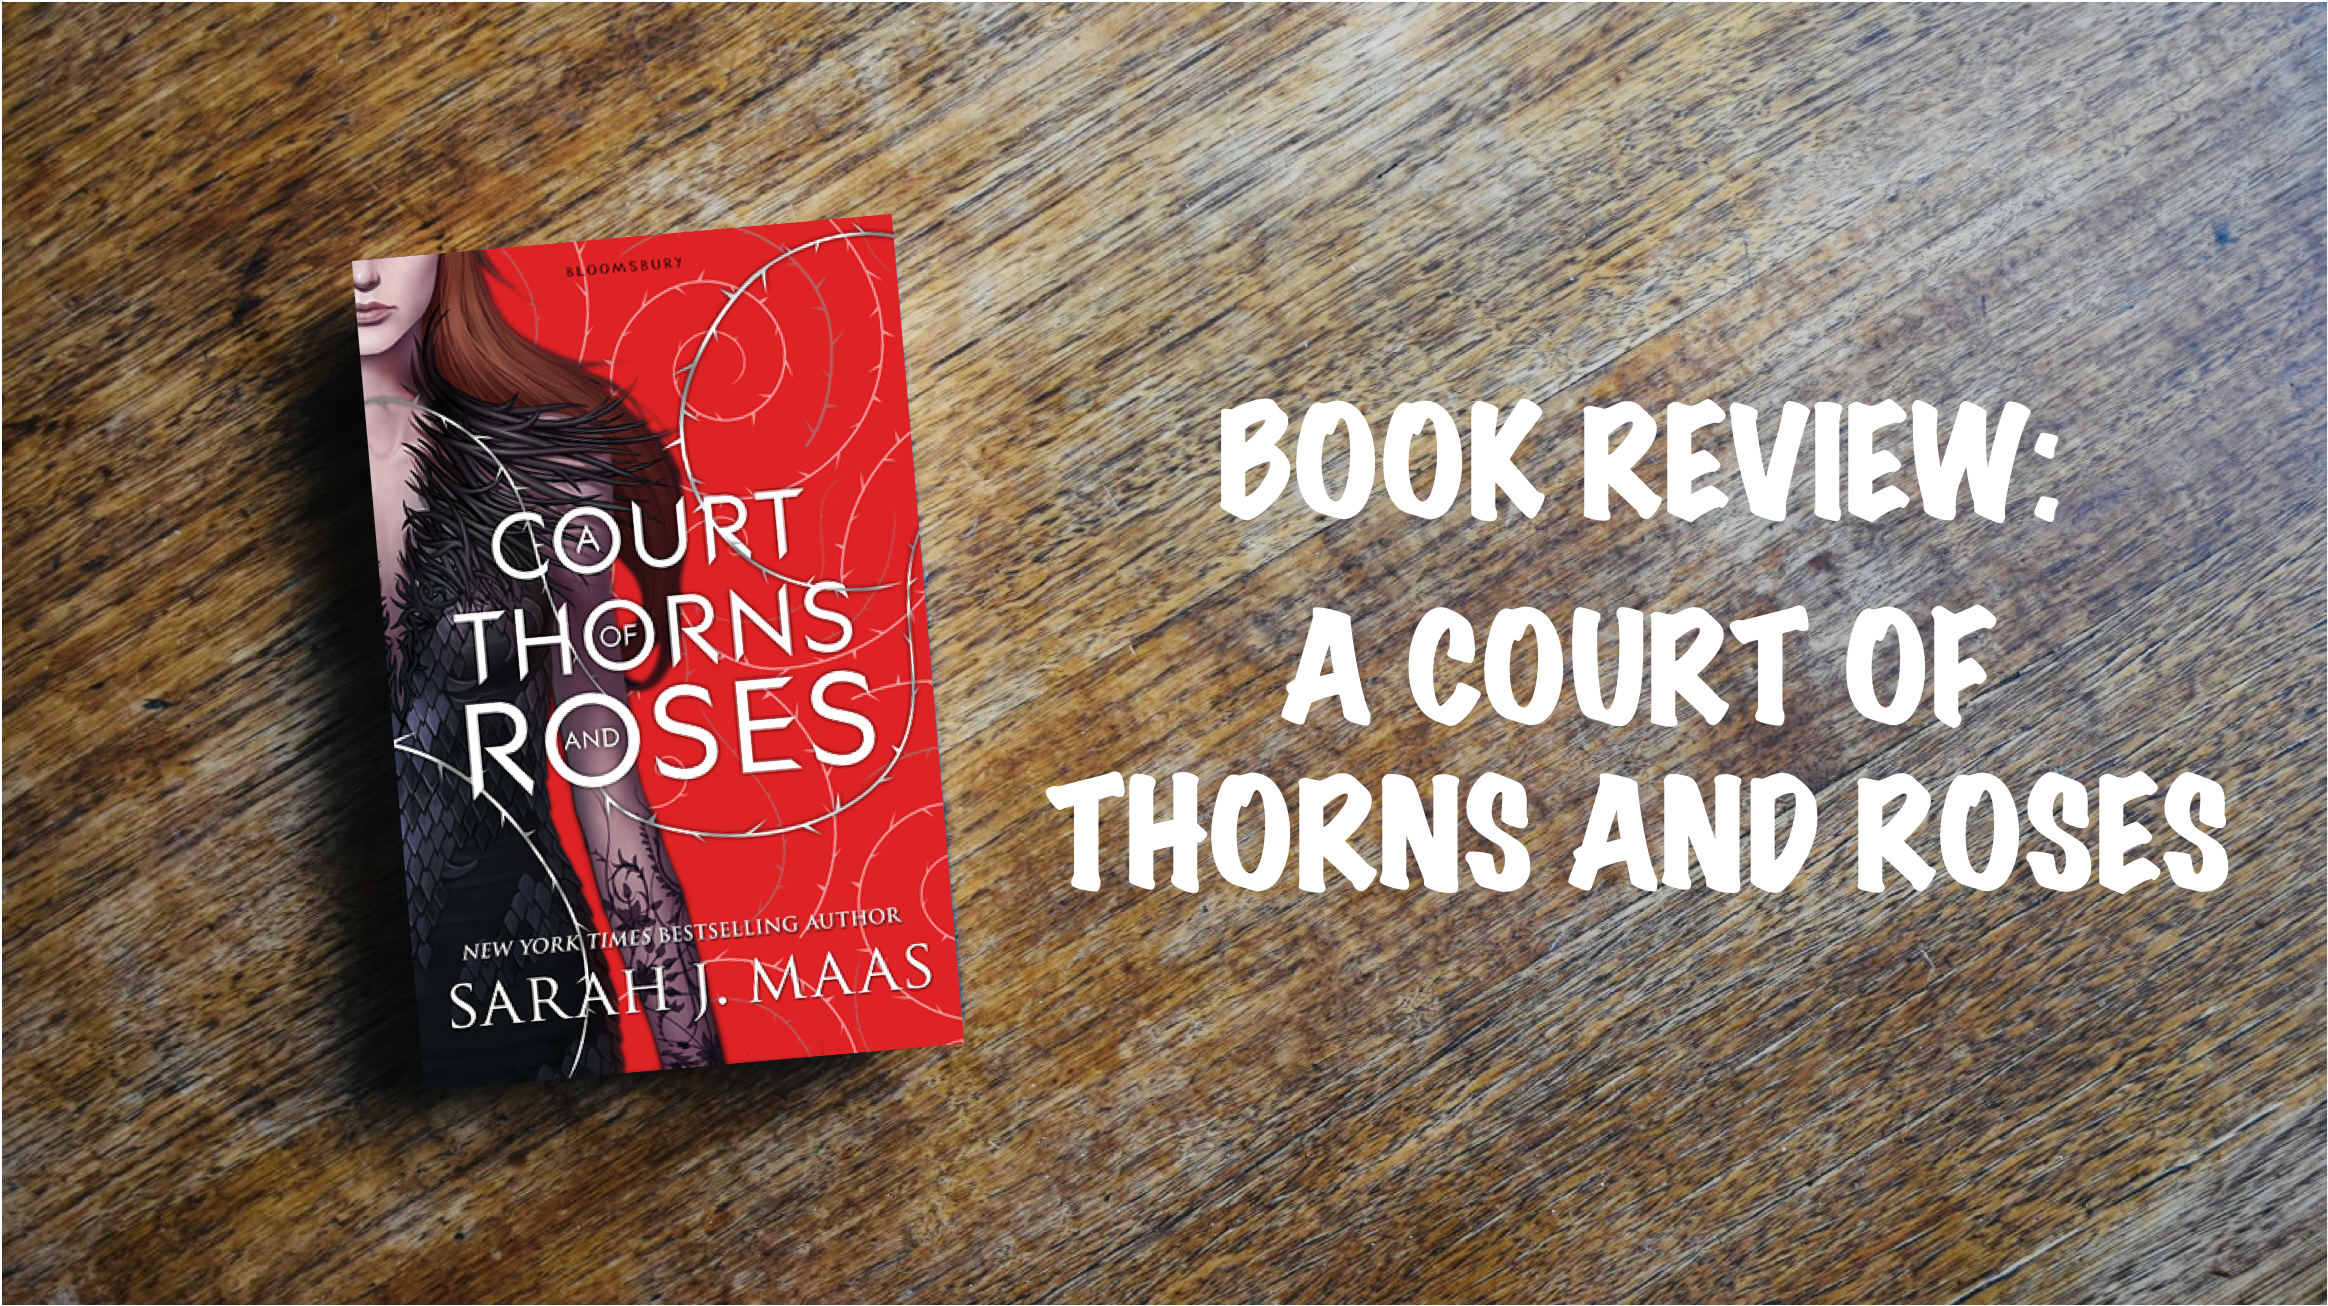 Book Review Banner: A Court of Thorns and Roses